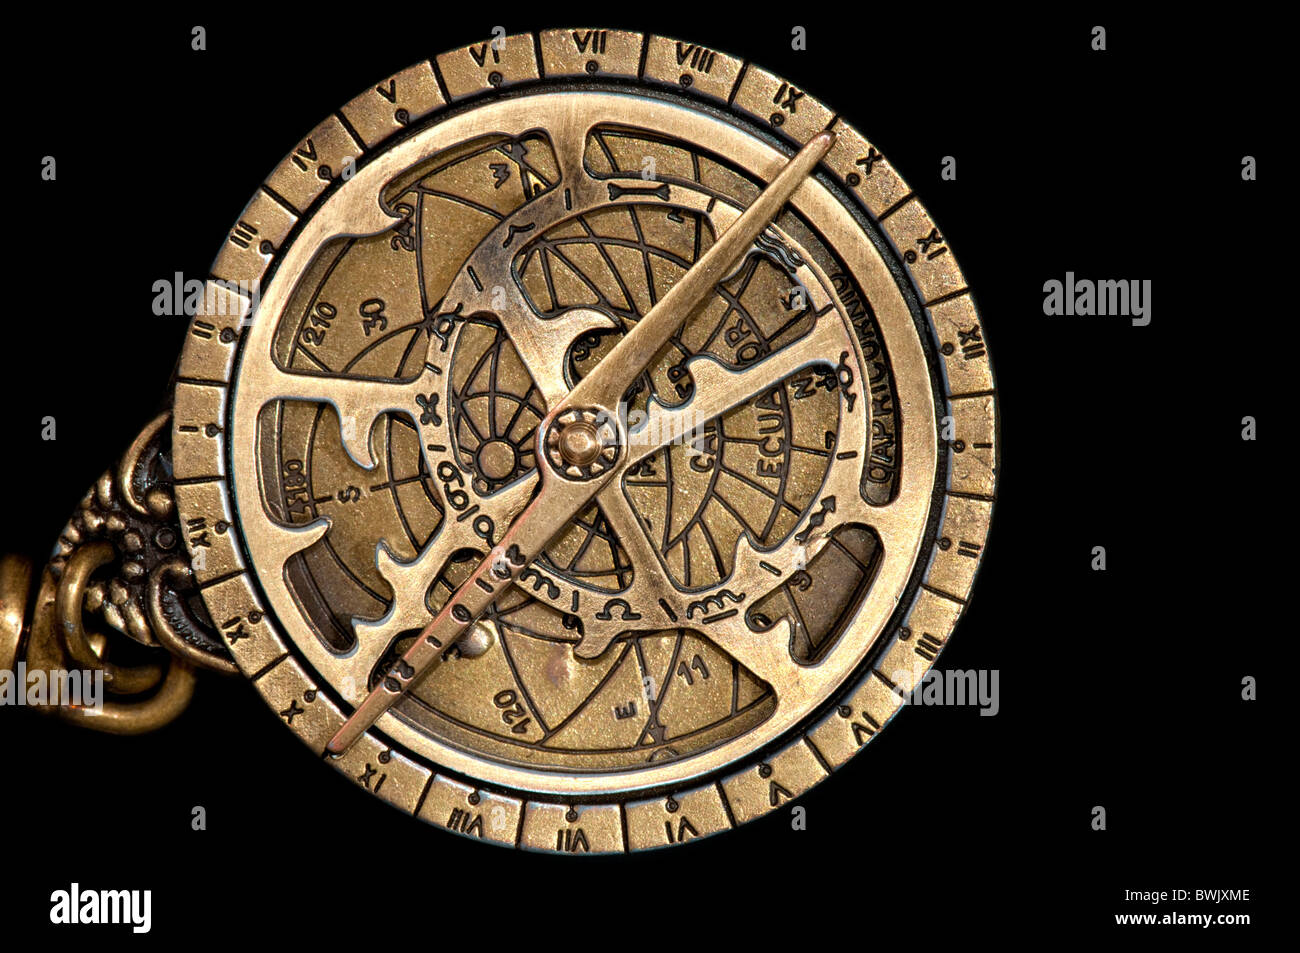 A replica of a medieval astrolabe which is a navigation instrument capable of 43 different astronomical calculations. Stock Photo